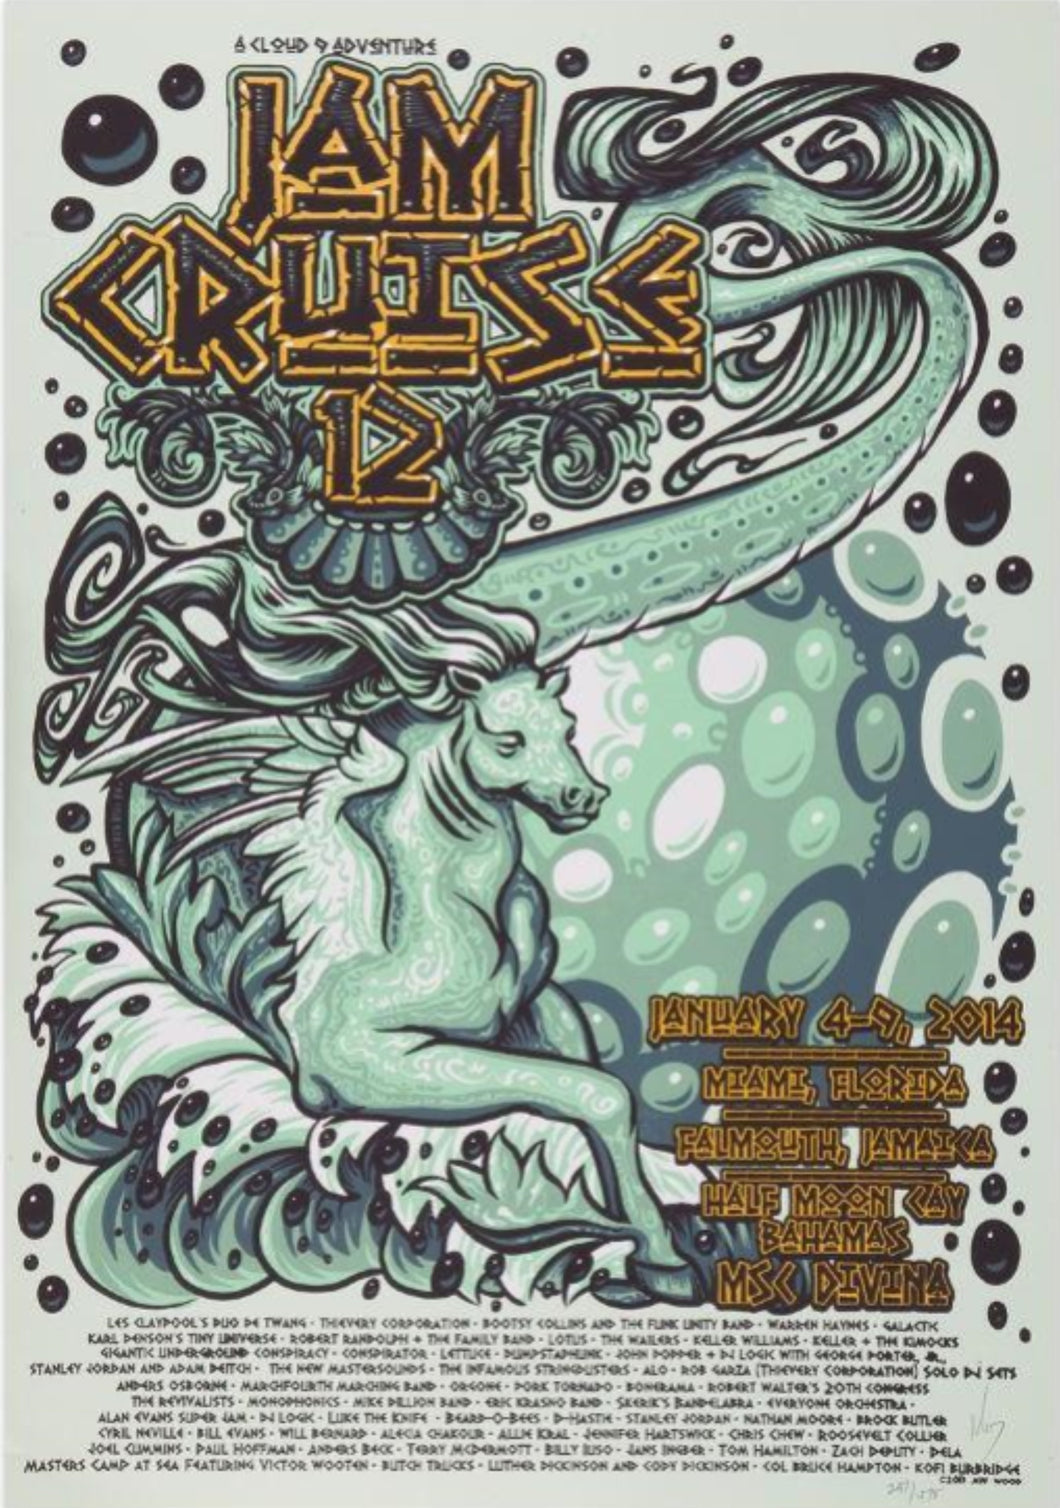 Jam Cruise 12 Poster - 2014